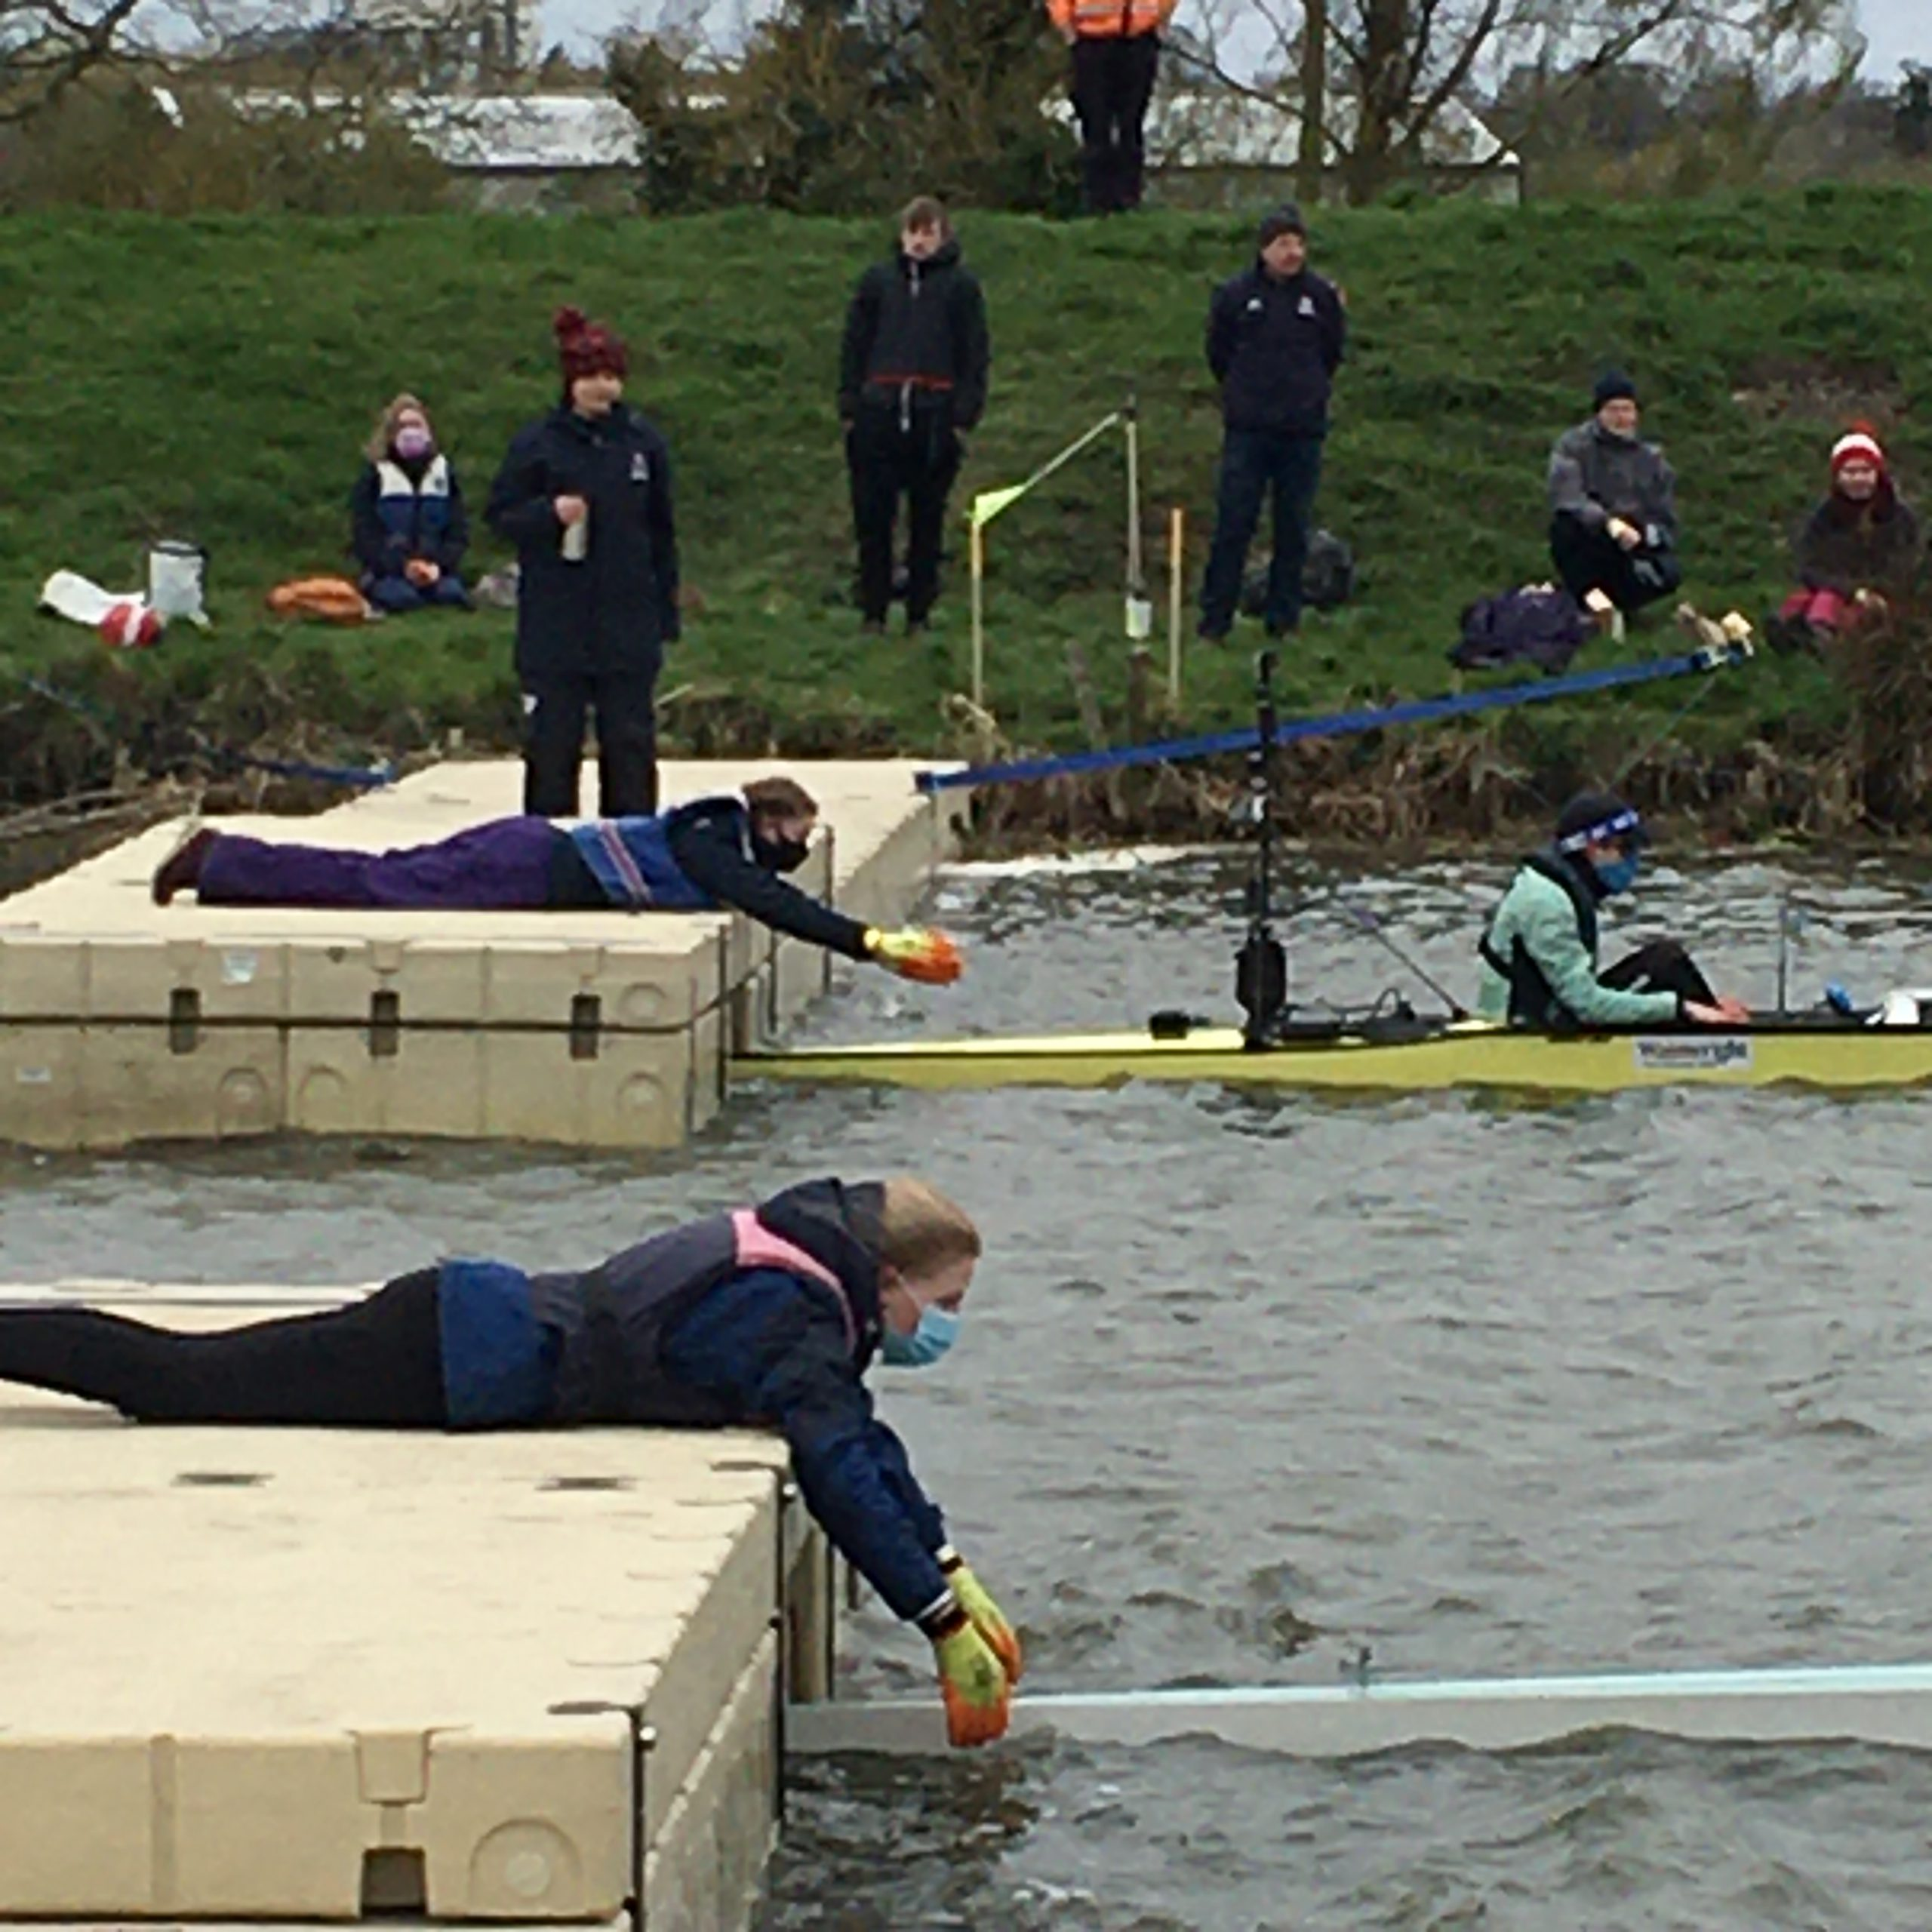 Isle of Ely & The Boat Race